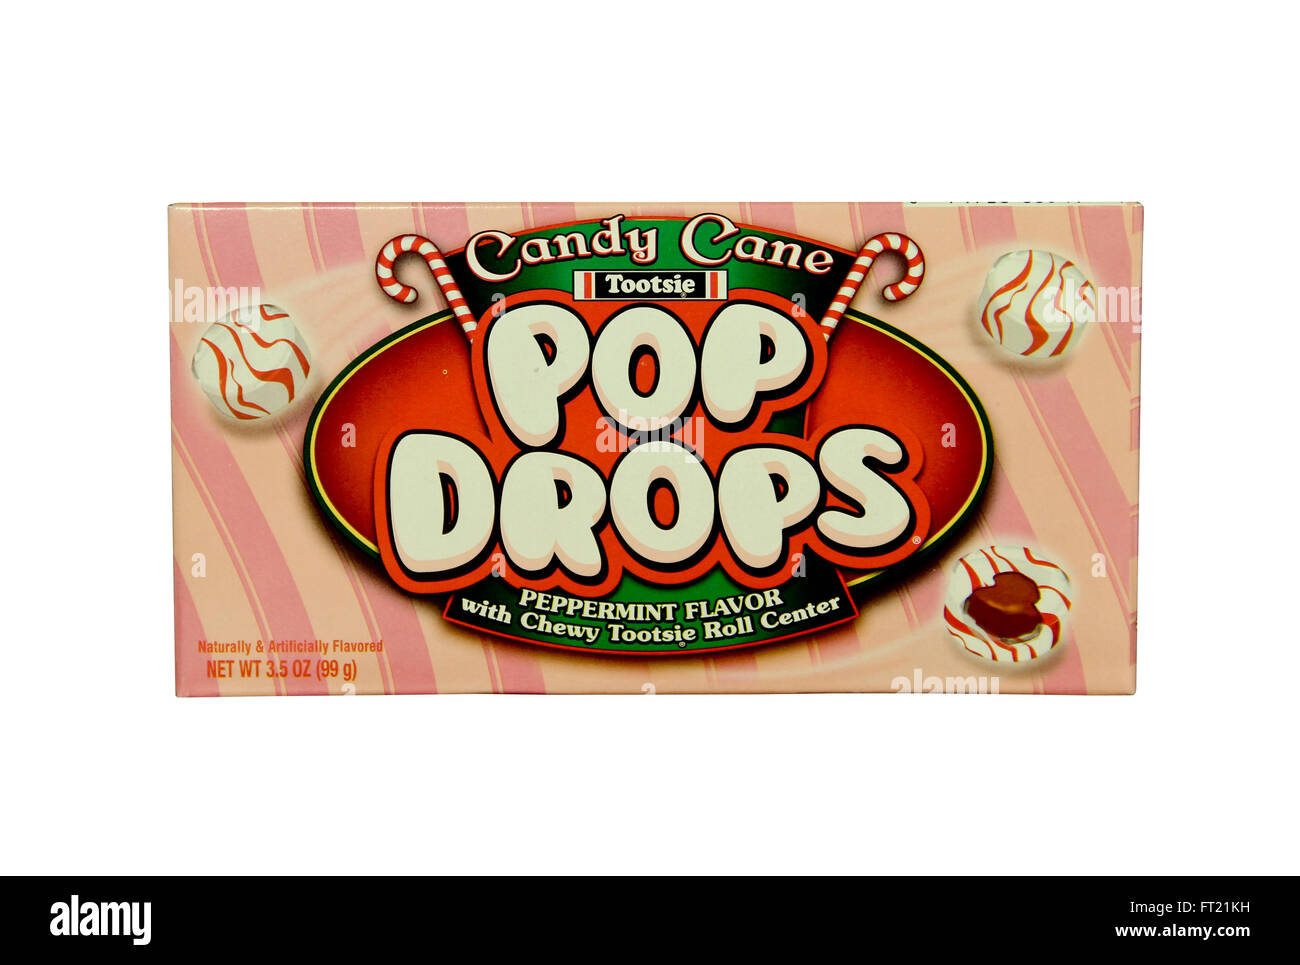 SPENCER , WISCONSIN- JANRUARY 29, 2014 : box of Candy Cane Pop Drops, Pop Drops are now made by Tootsie Roll Industries - Stock Image